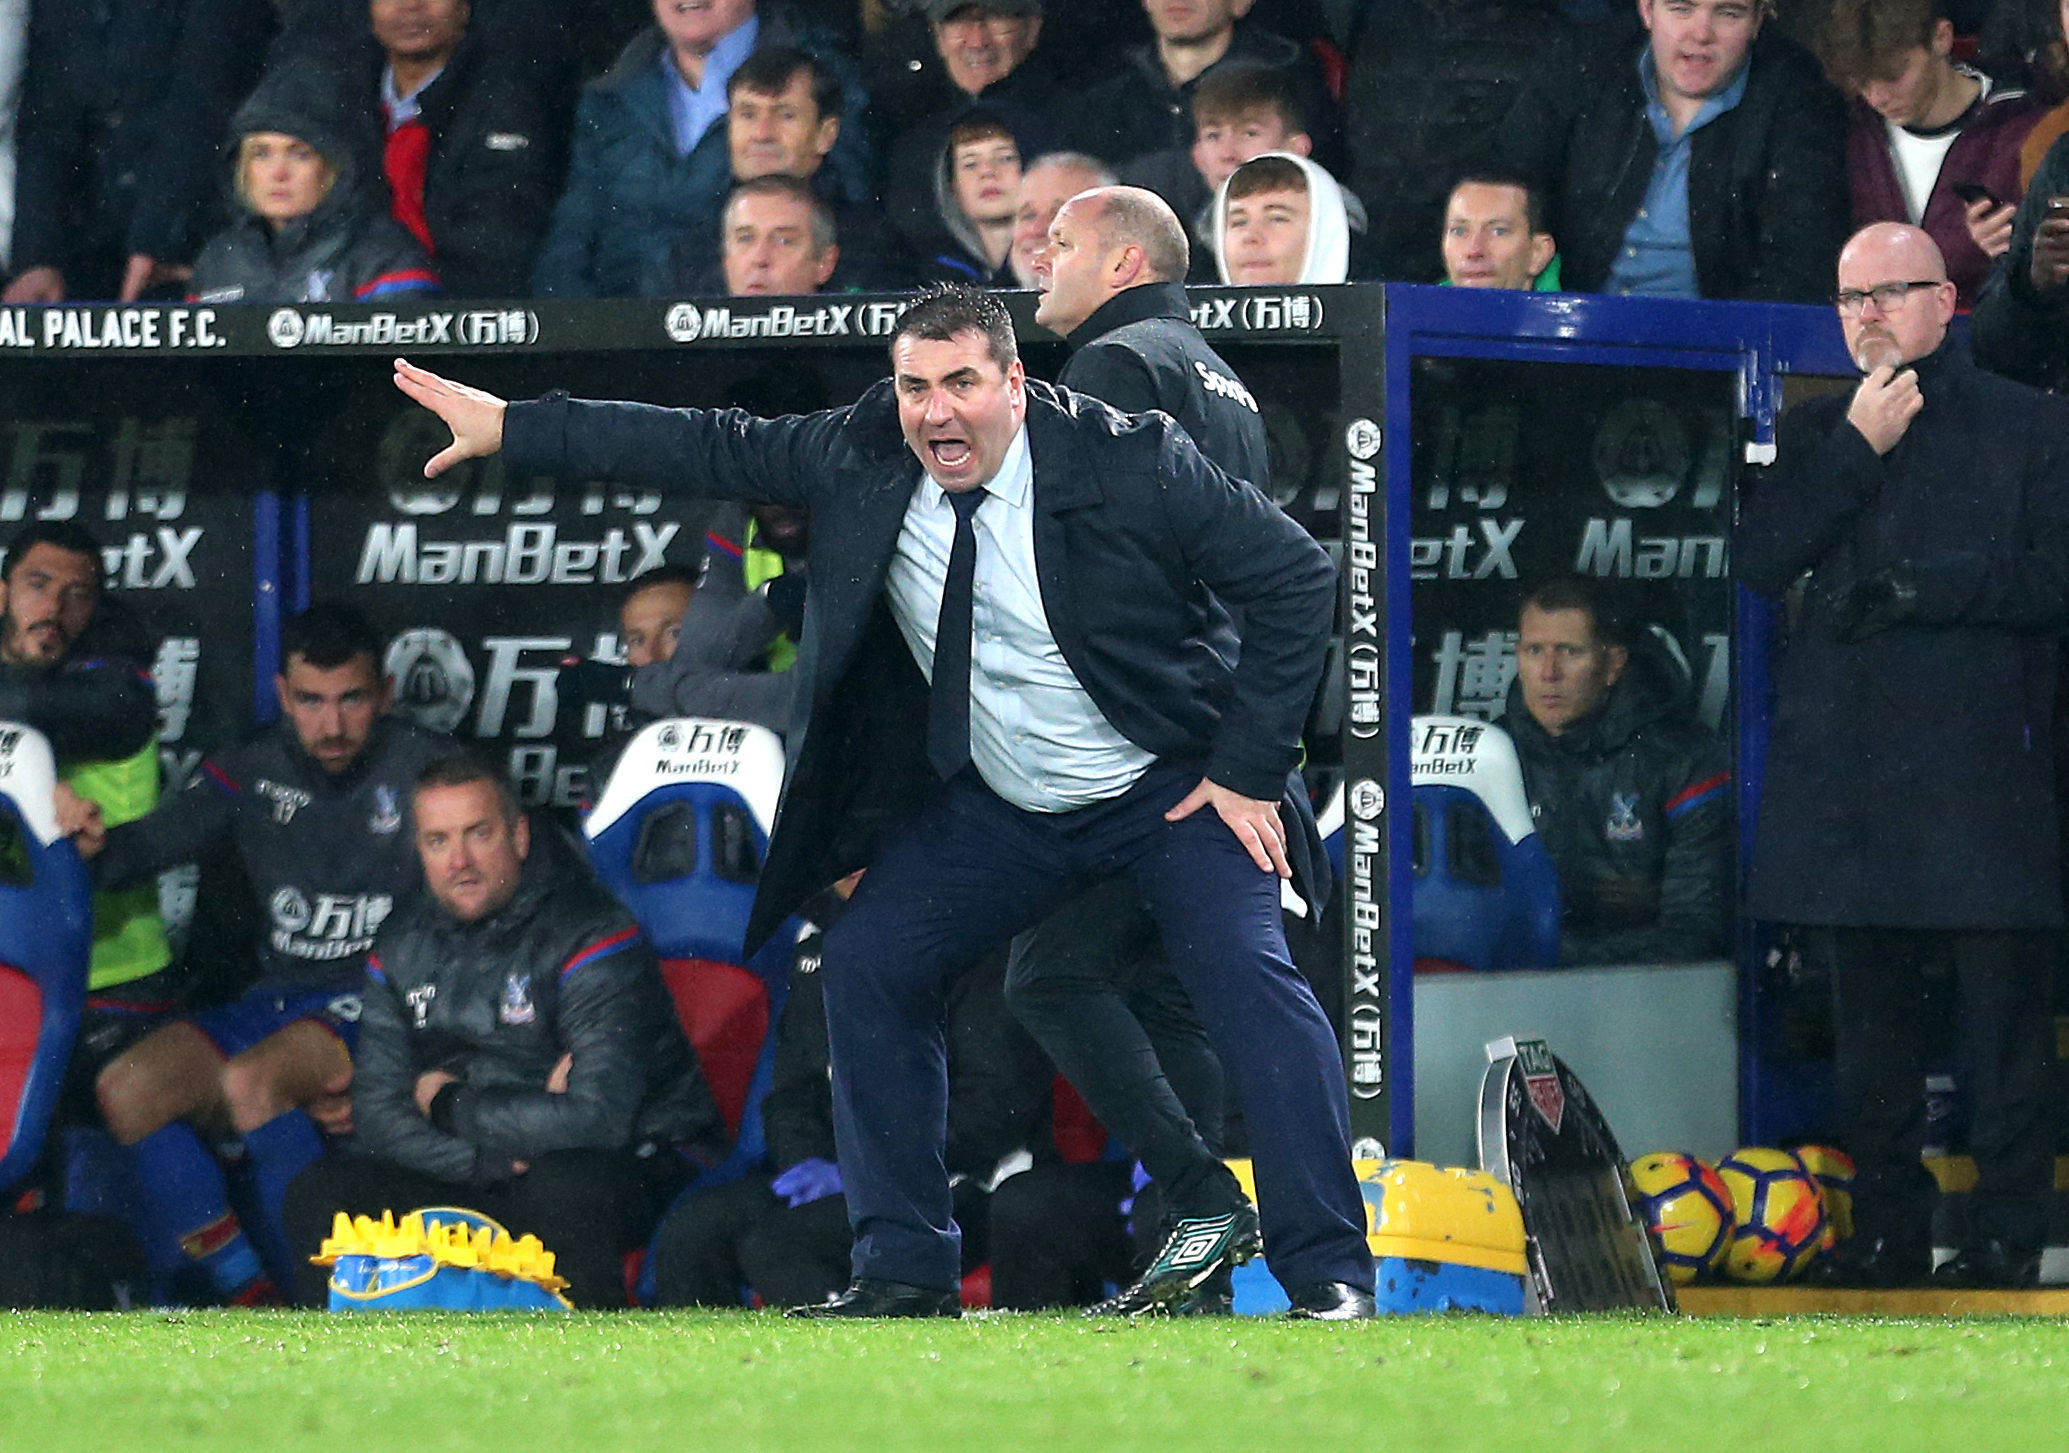 David Unsworth urges Everton on at Crystal Palace in November during his caretaker spell in charge Picture: Steven Paston/PA Wire